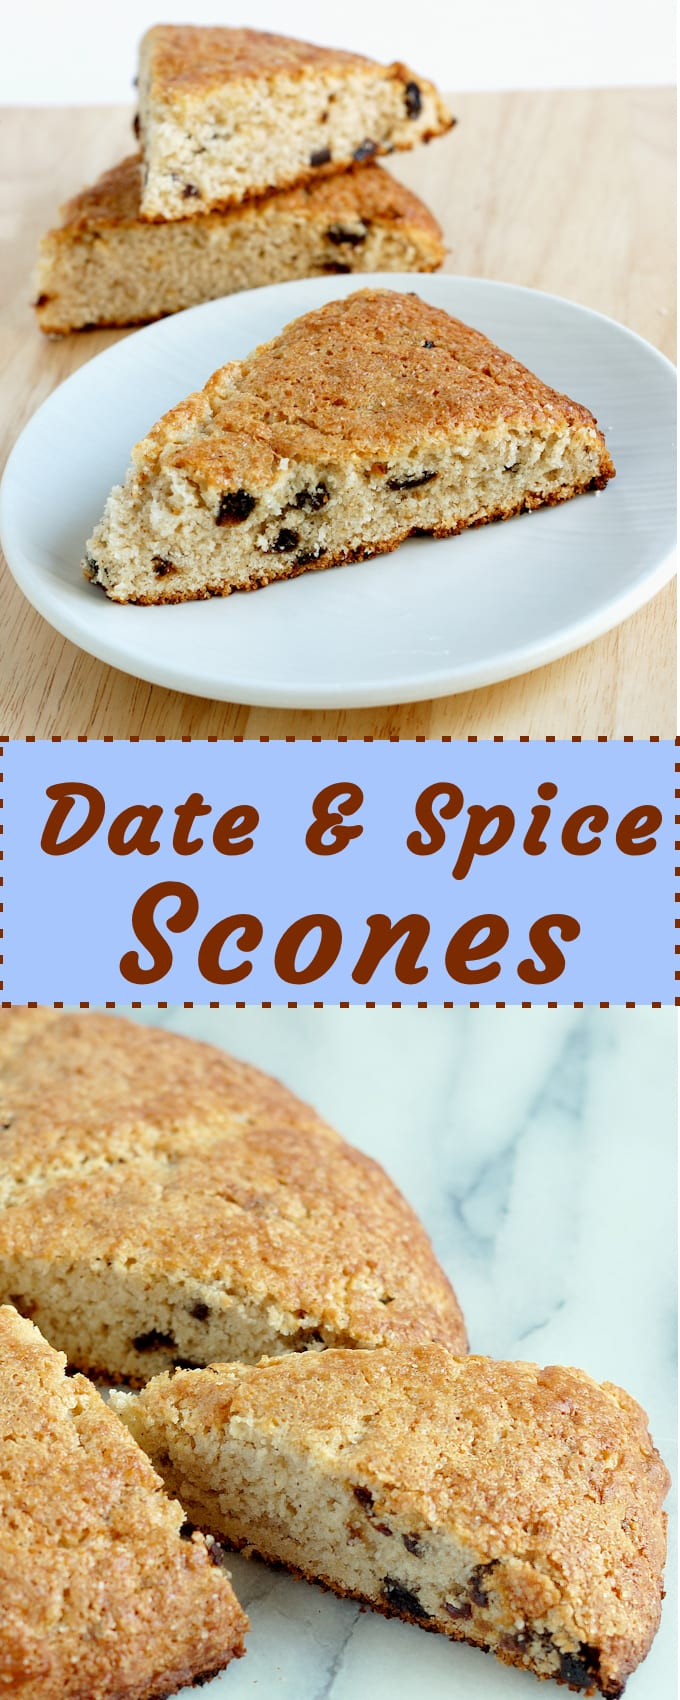 This dough comes together in mere minutes and bakes in under30. Less than an hour after rolling out of bed you can have warm Date & Spice scones for breakfast.